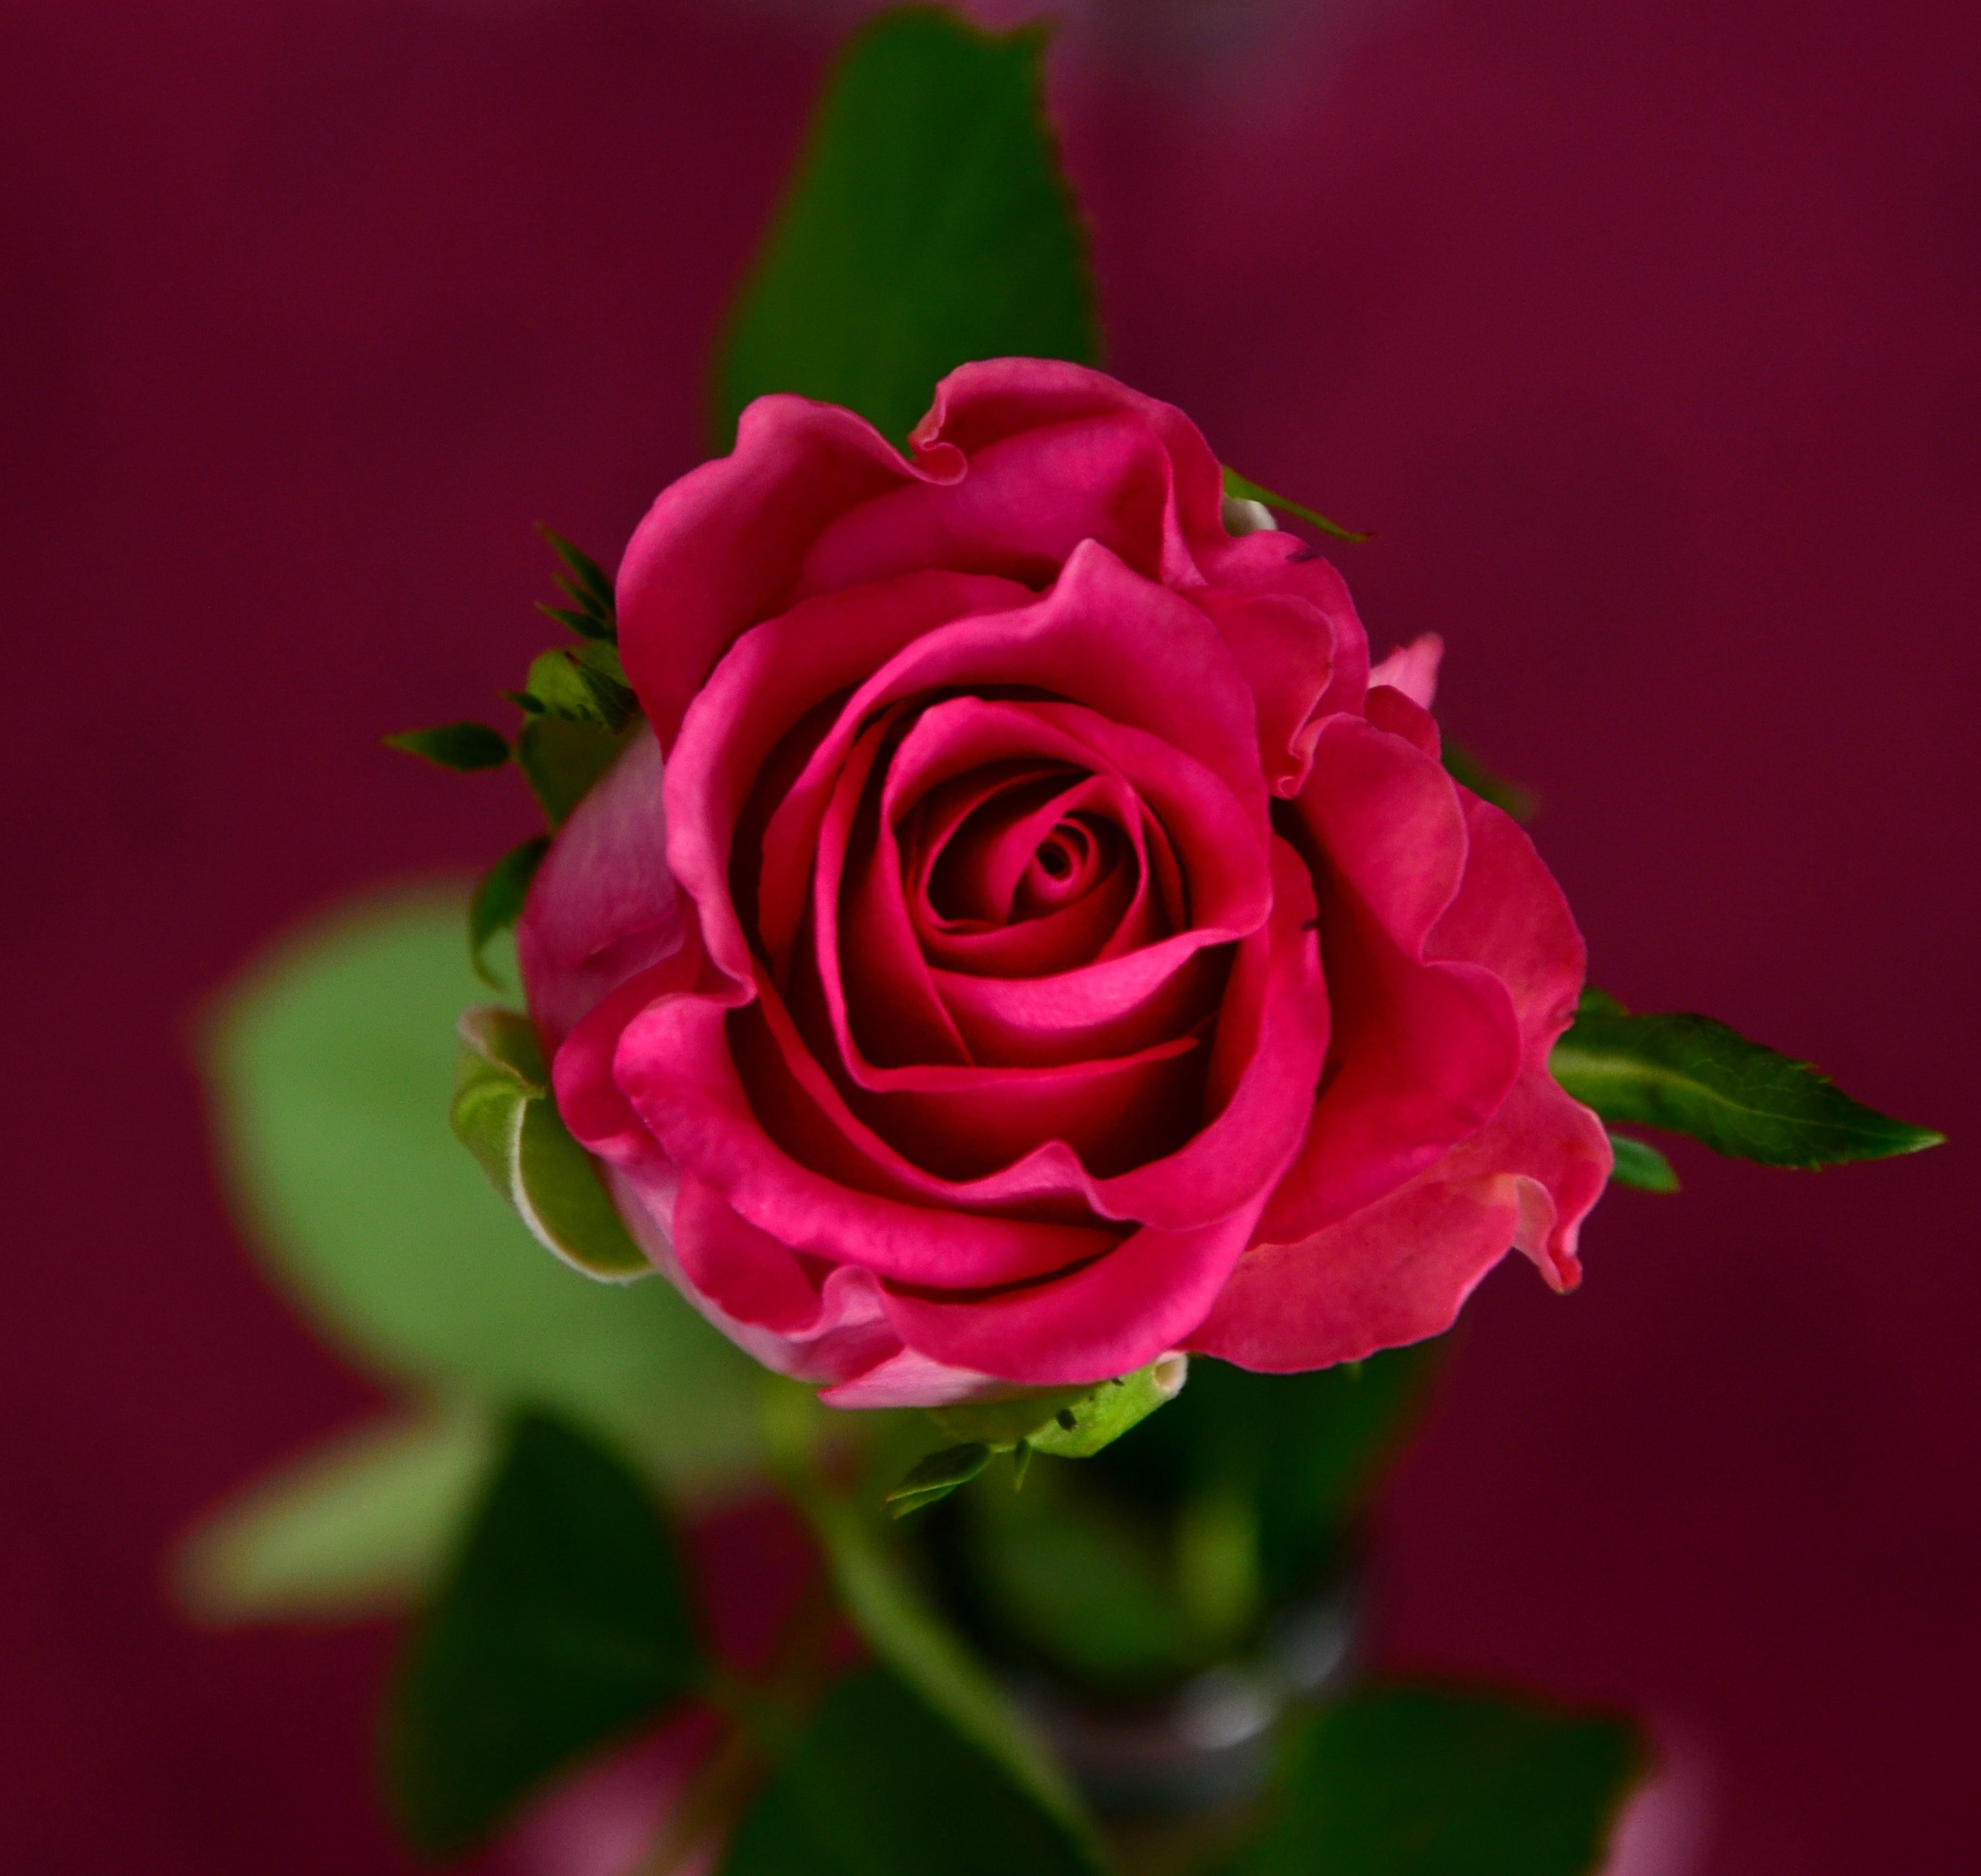 New red rose flower photo download